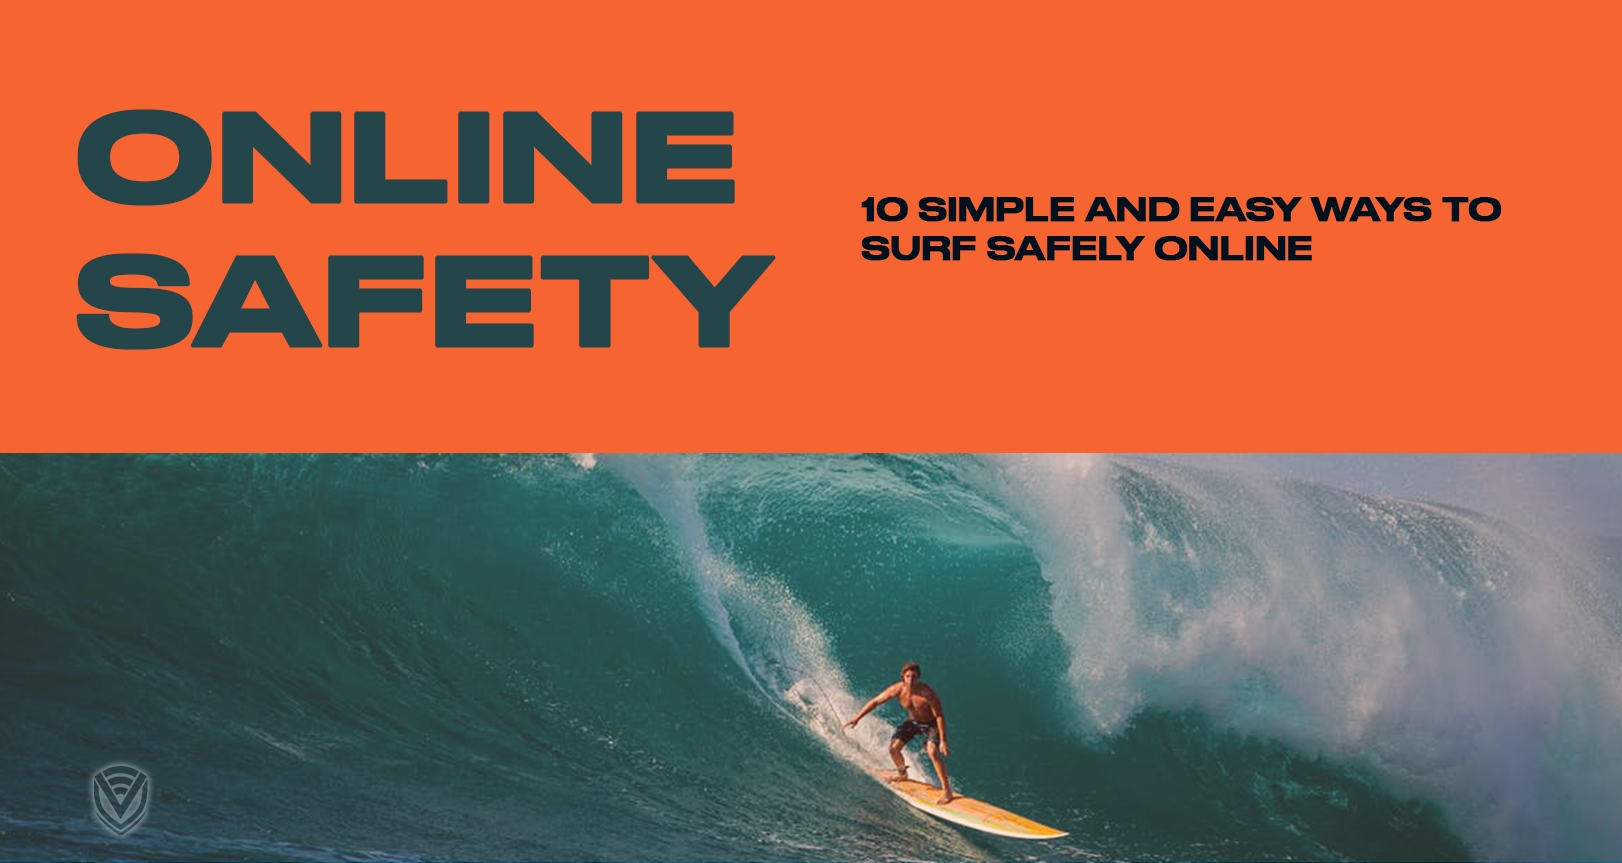 10 Simple & Easy Ways To Surf Online Safely